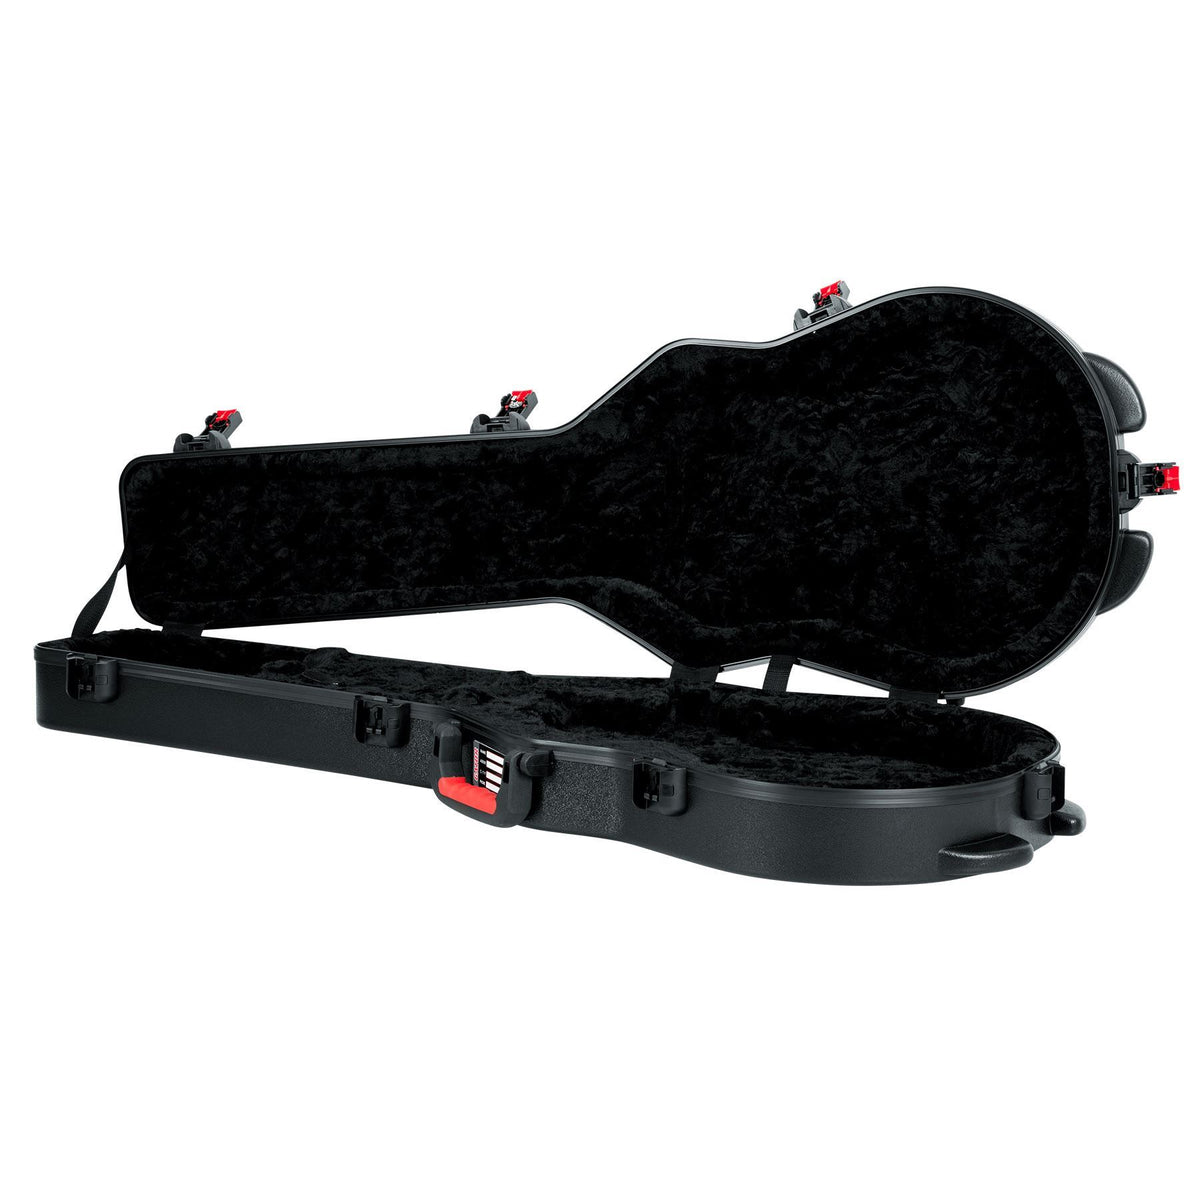 Gator TSA Series Guitar Case for Gibson Les Paul Studio, Traditional, Vintage, Tribute Guitars